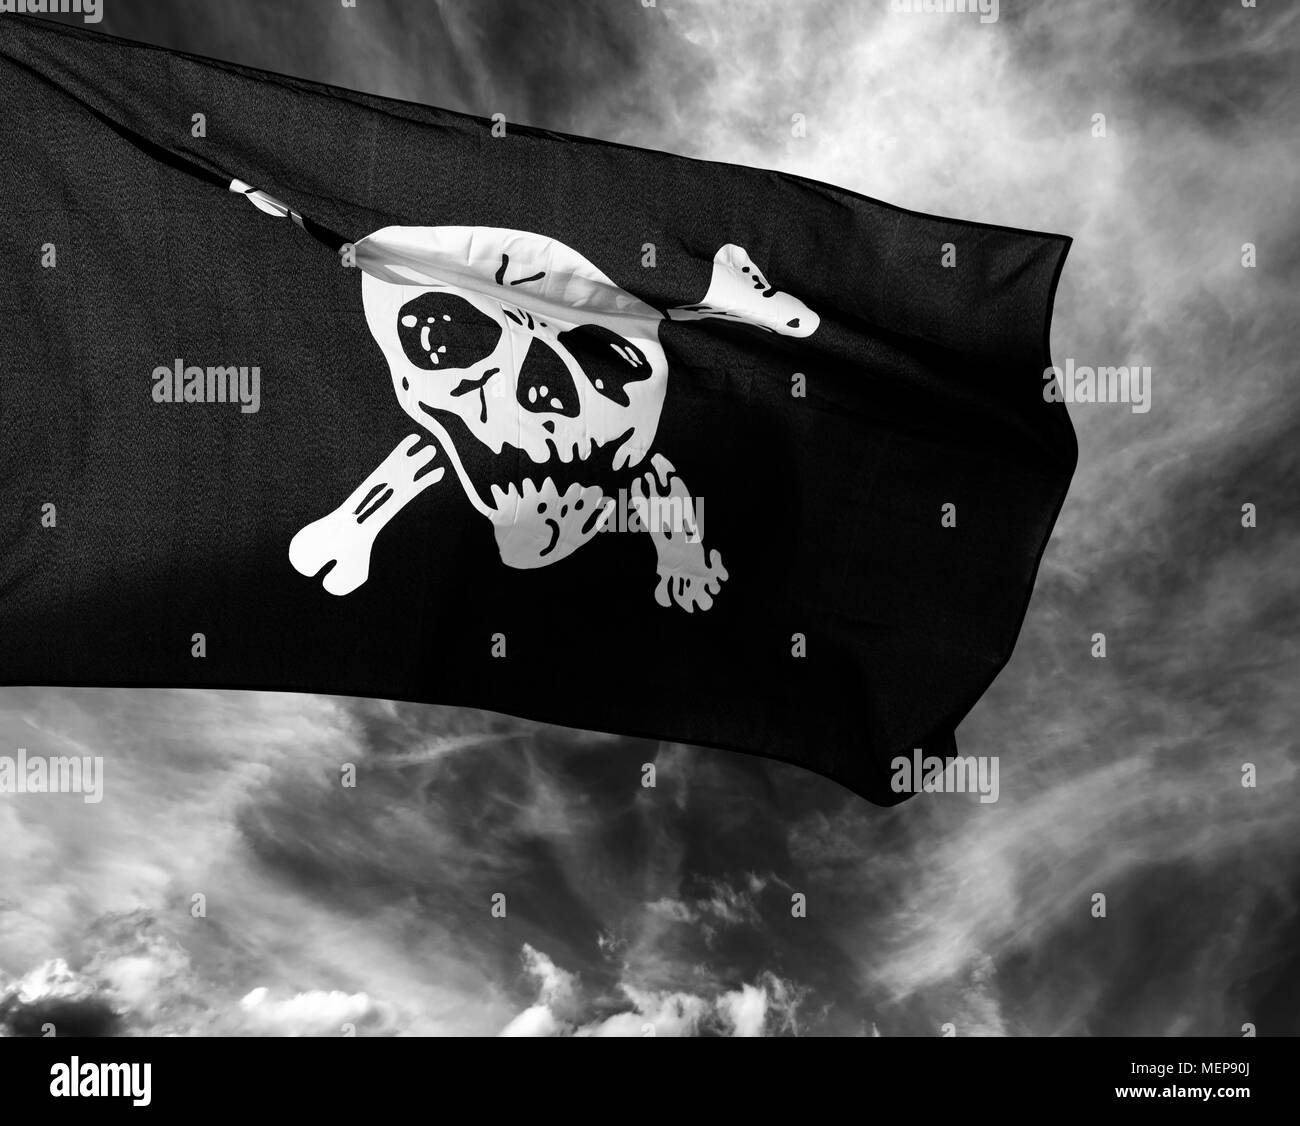 Black and white Jolly Roger (pirate flag) against storm clouds - Stock Image